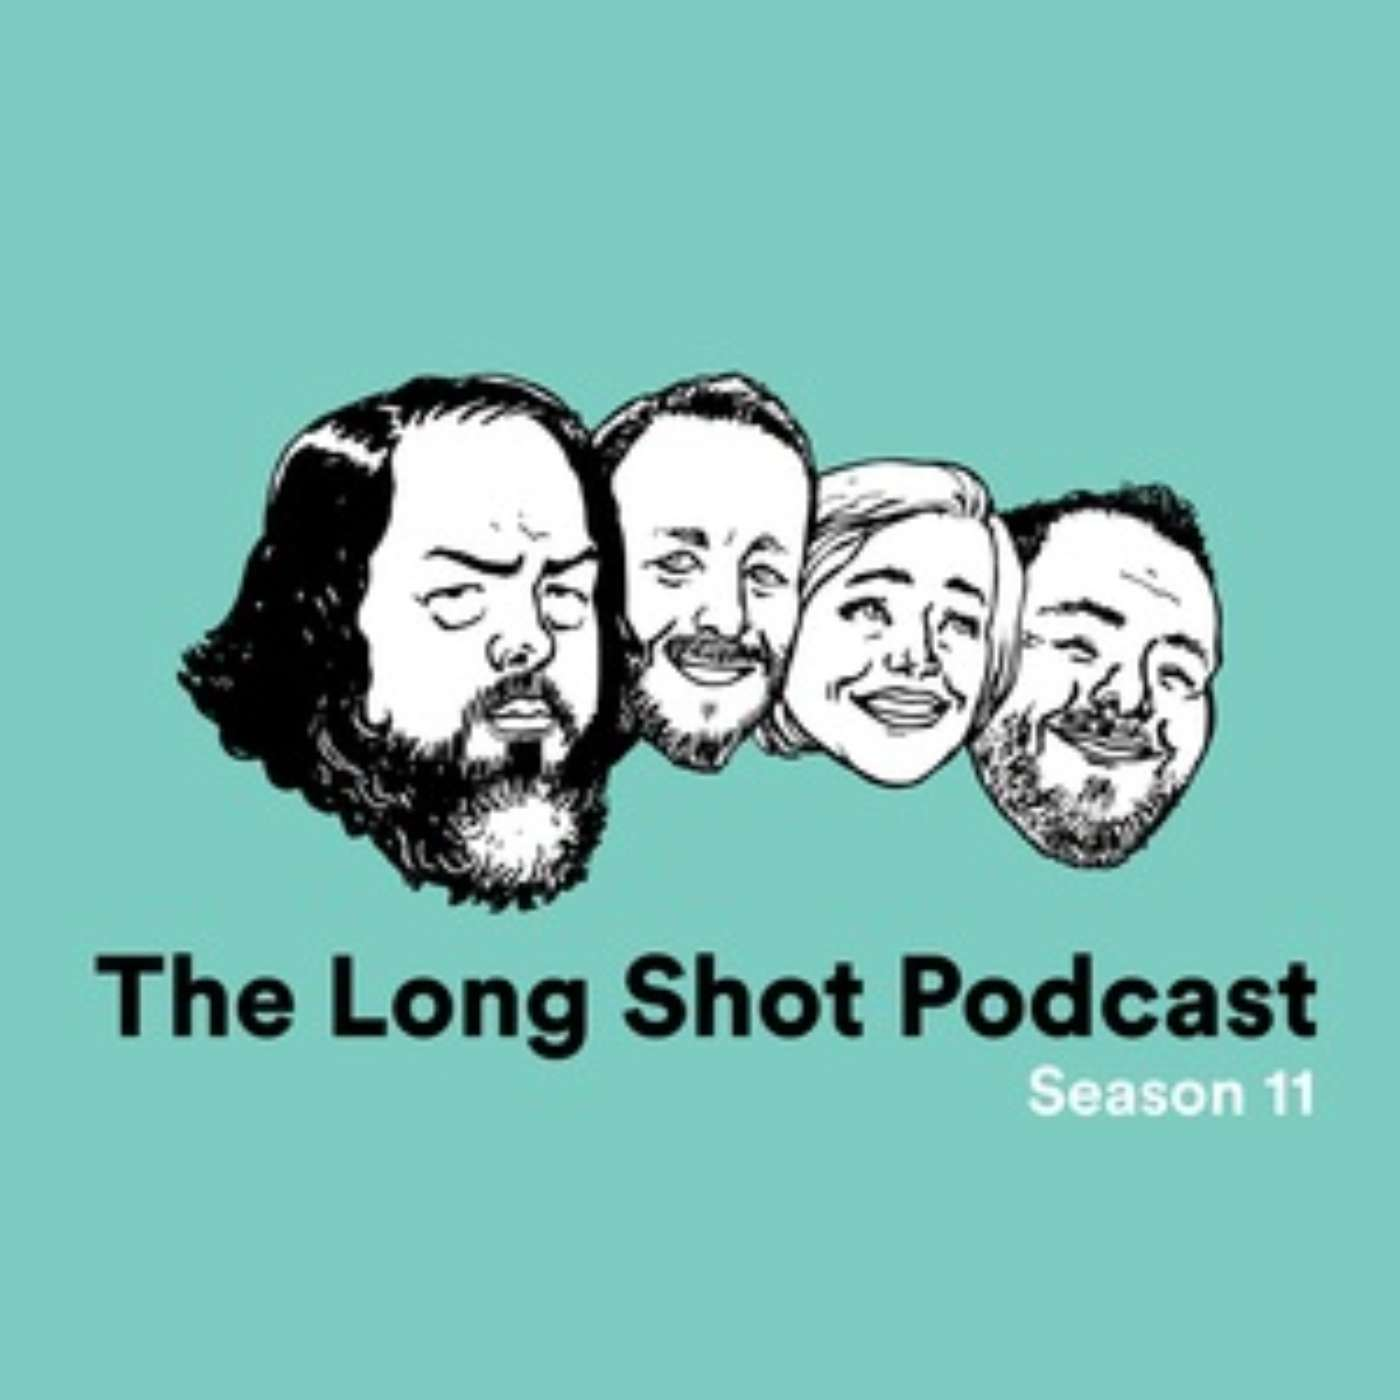 The Long Shot Podcast